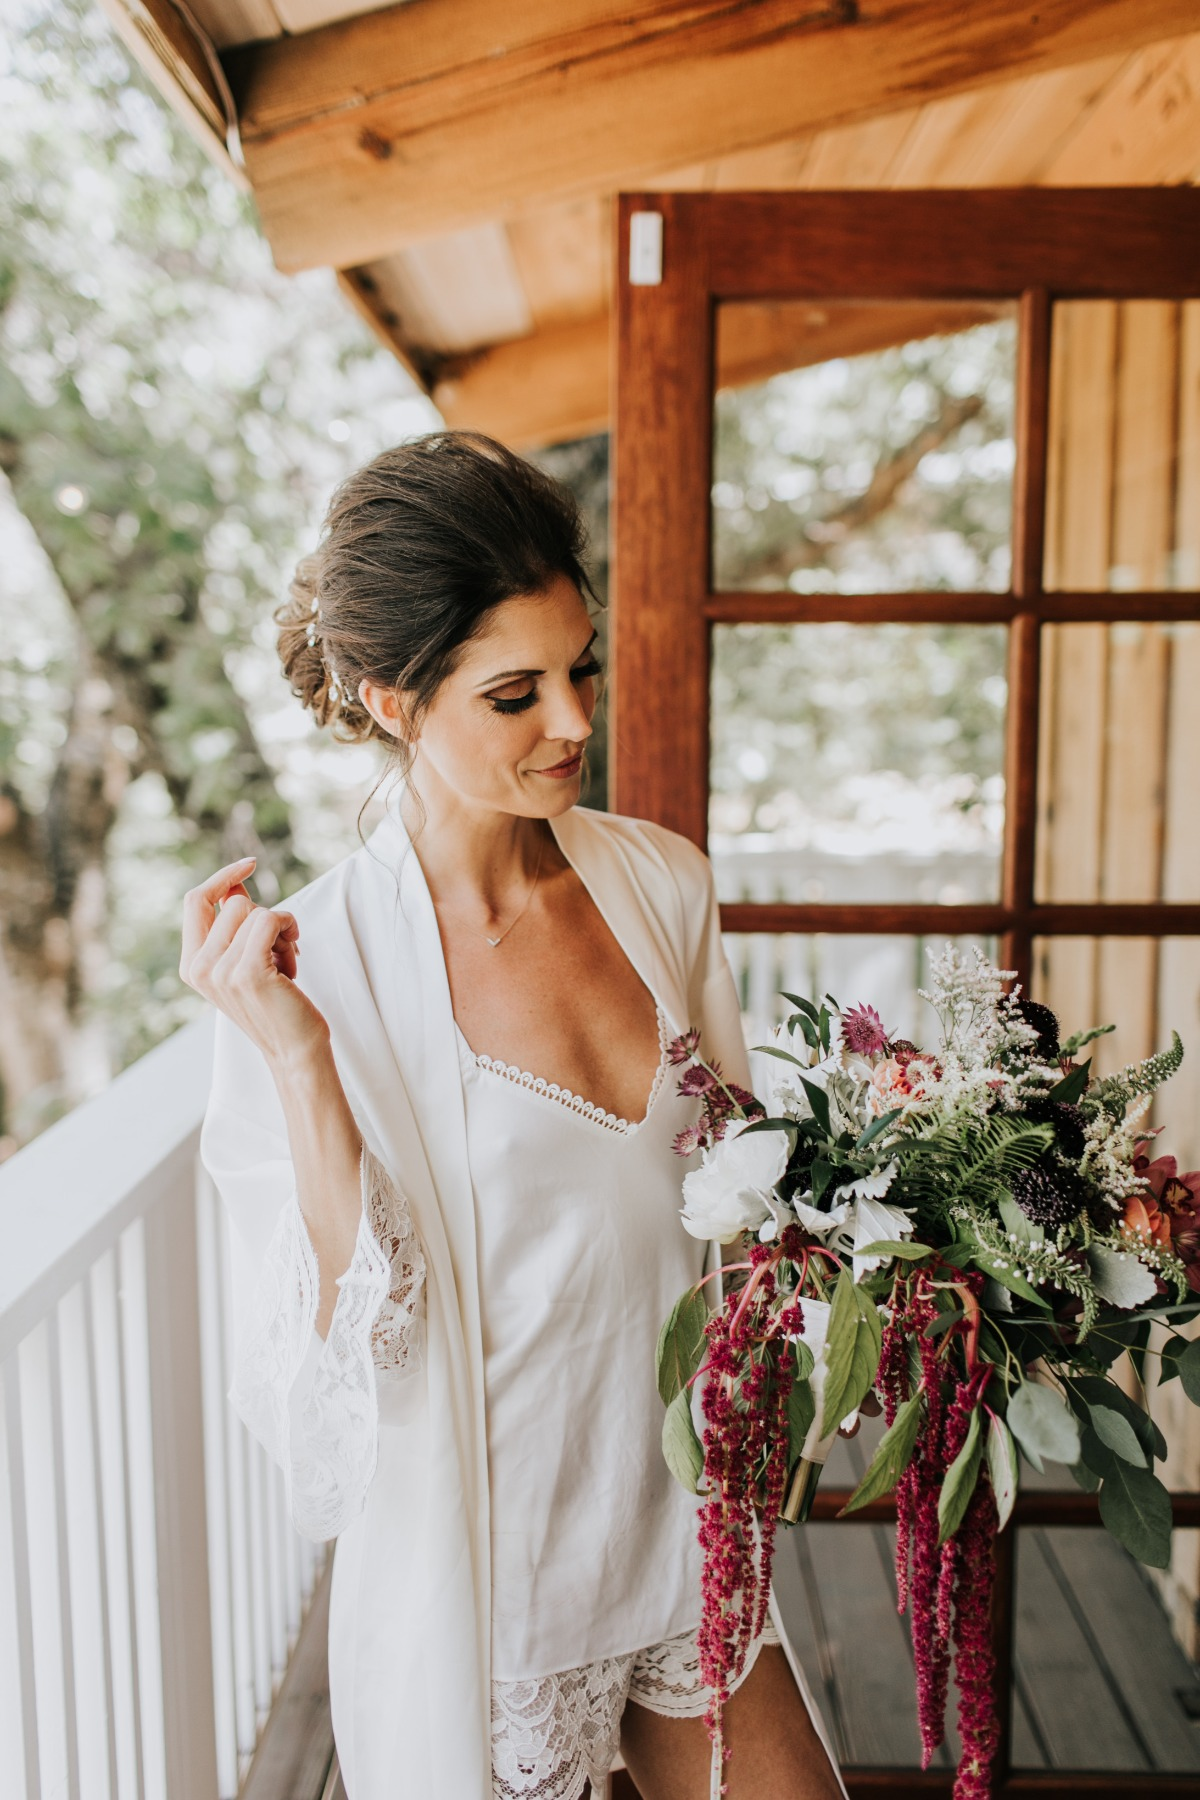 Bride getting ready robe